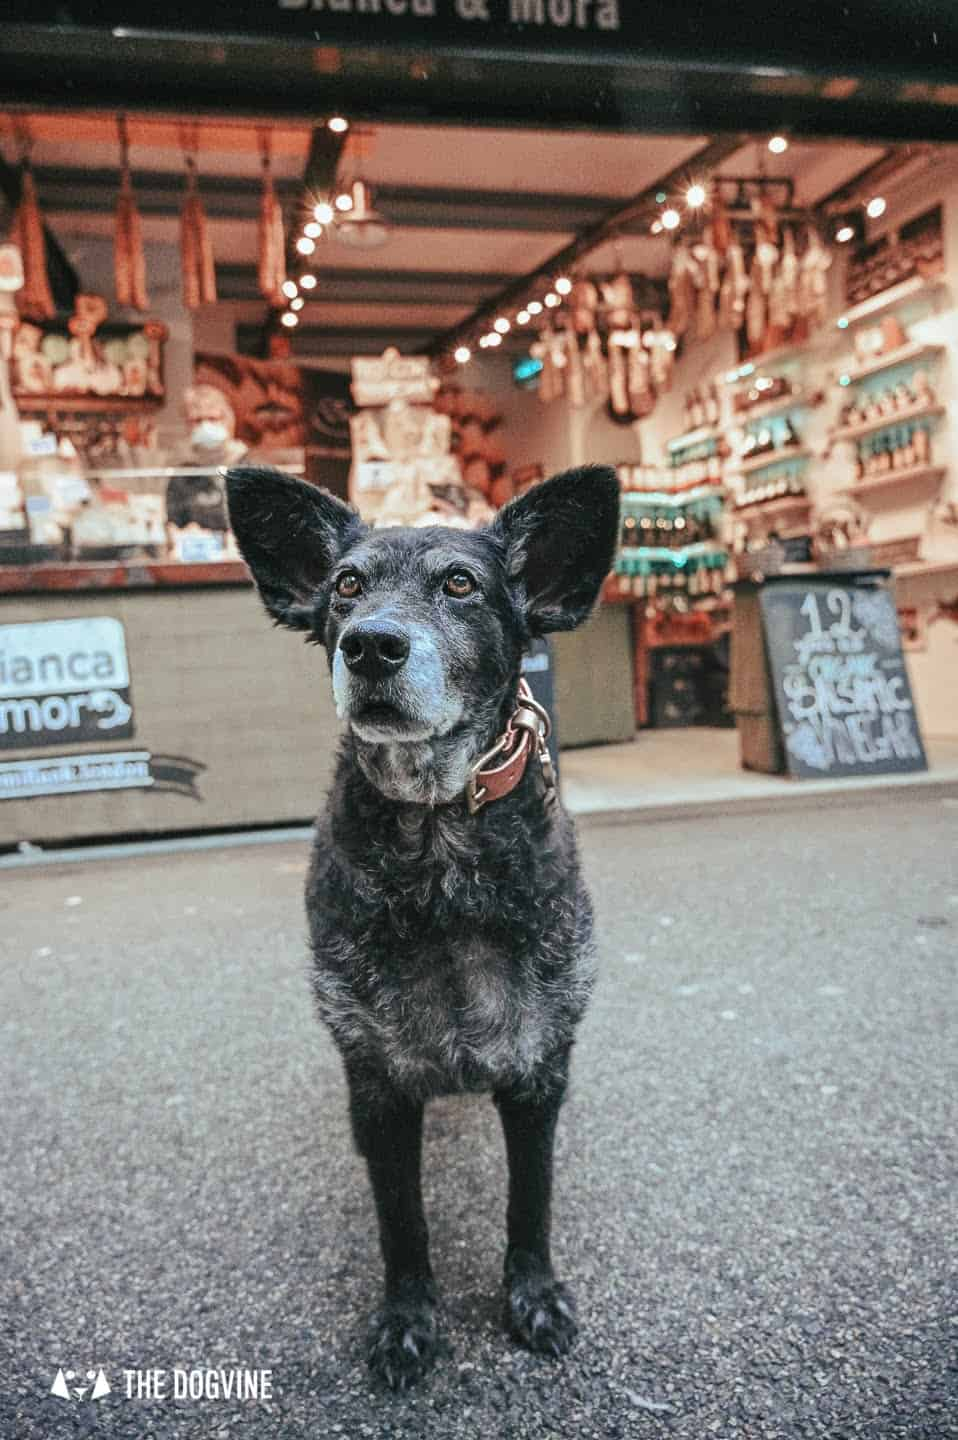 Dog-friendly Borough Market is open every day except for Sundays